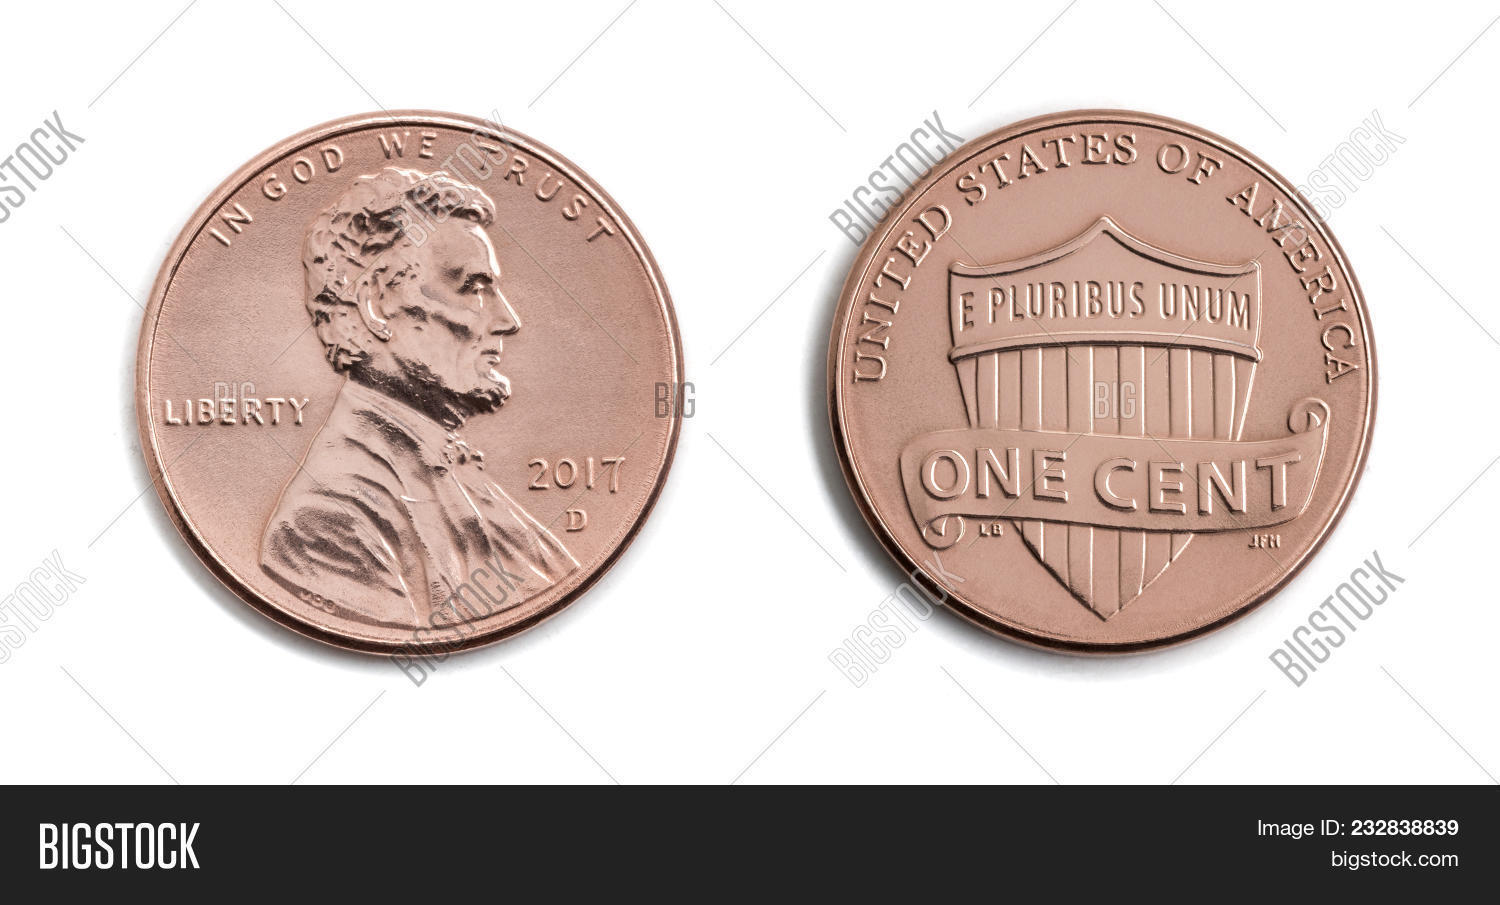 american,background,bank,british,bronze,business,cash,cent,circle,closeup,coin,coinage,concept,copper,currency,dime,discount,dollar,finance,financial,god,inflation,investment,isolated,liberty,lincoln,macro,market,metal,metallic,money,object,old,one,pay,portrait,president,round,sale,set,shine,single,states,symbol,union,united,usa,vintage,wealth,white